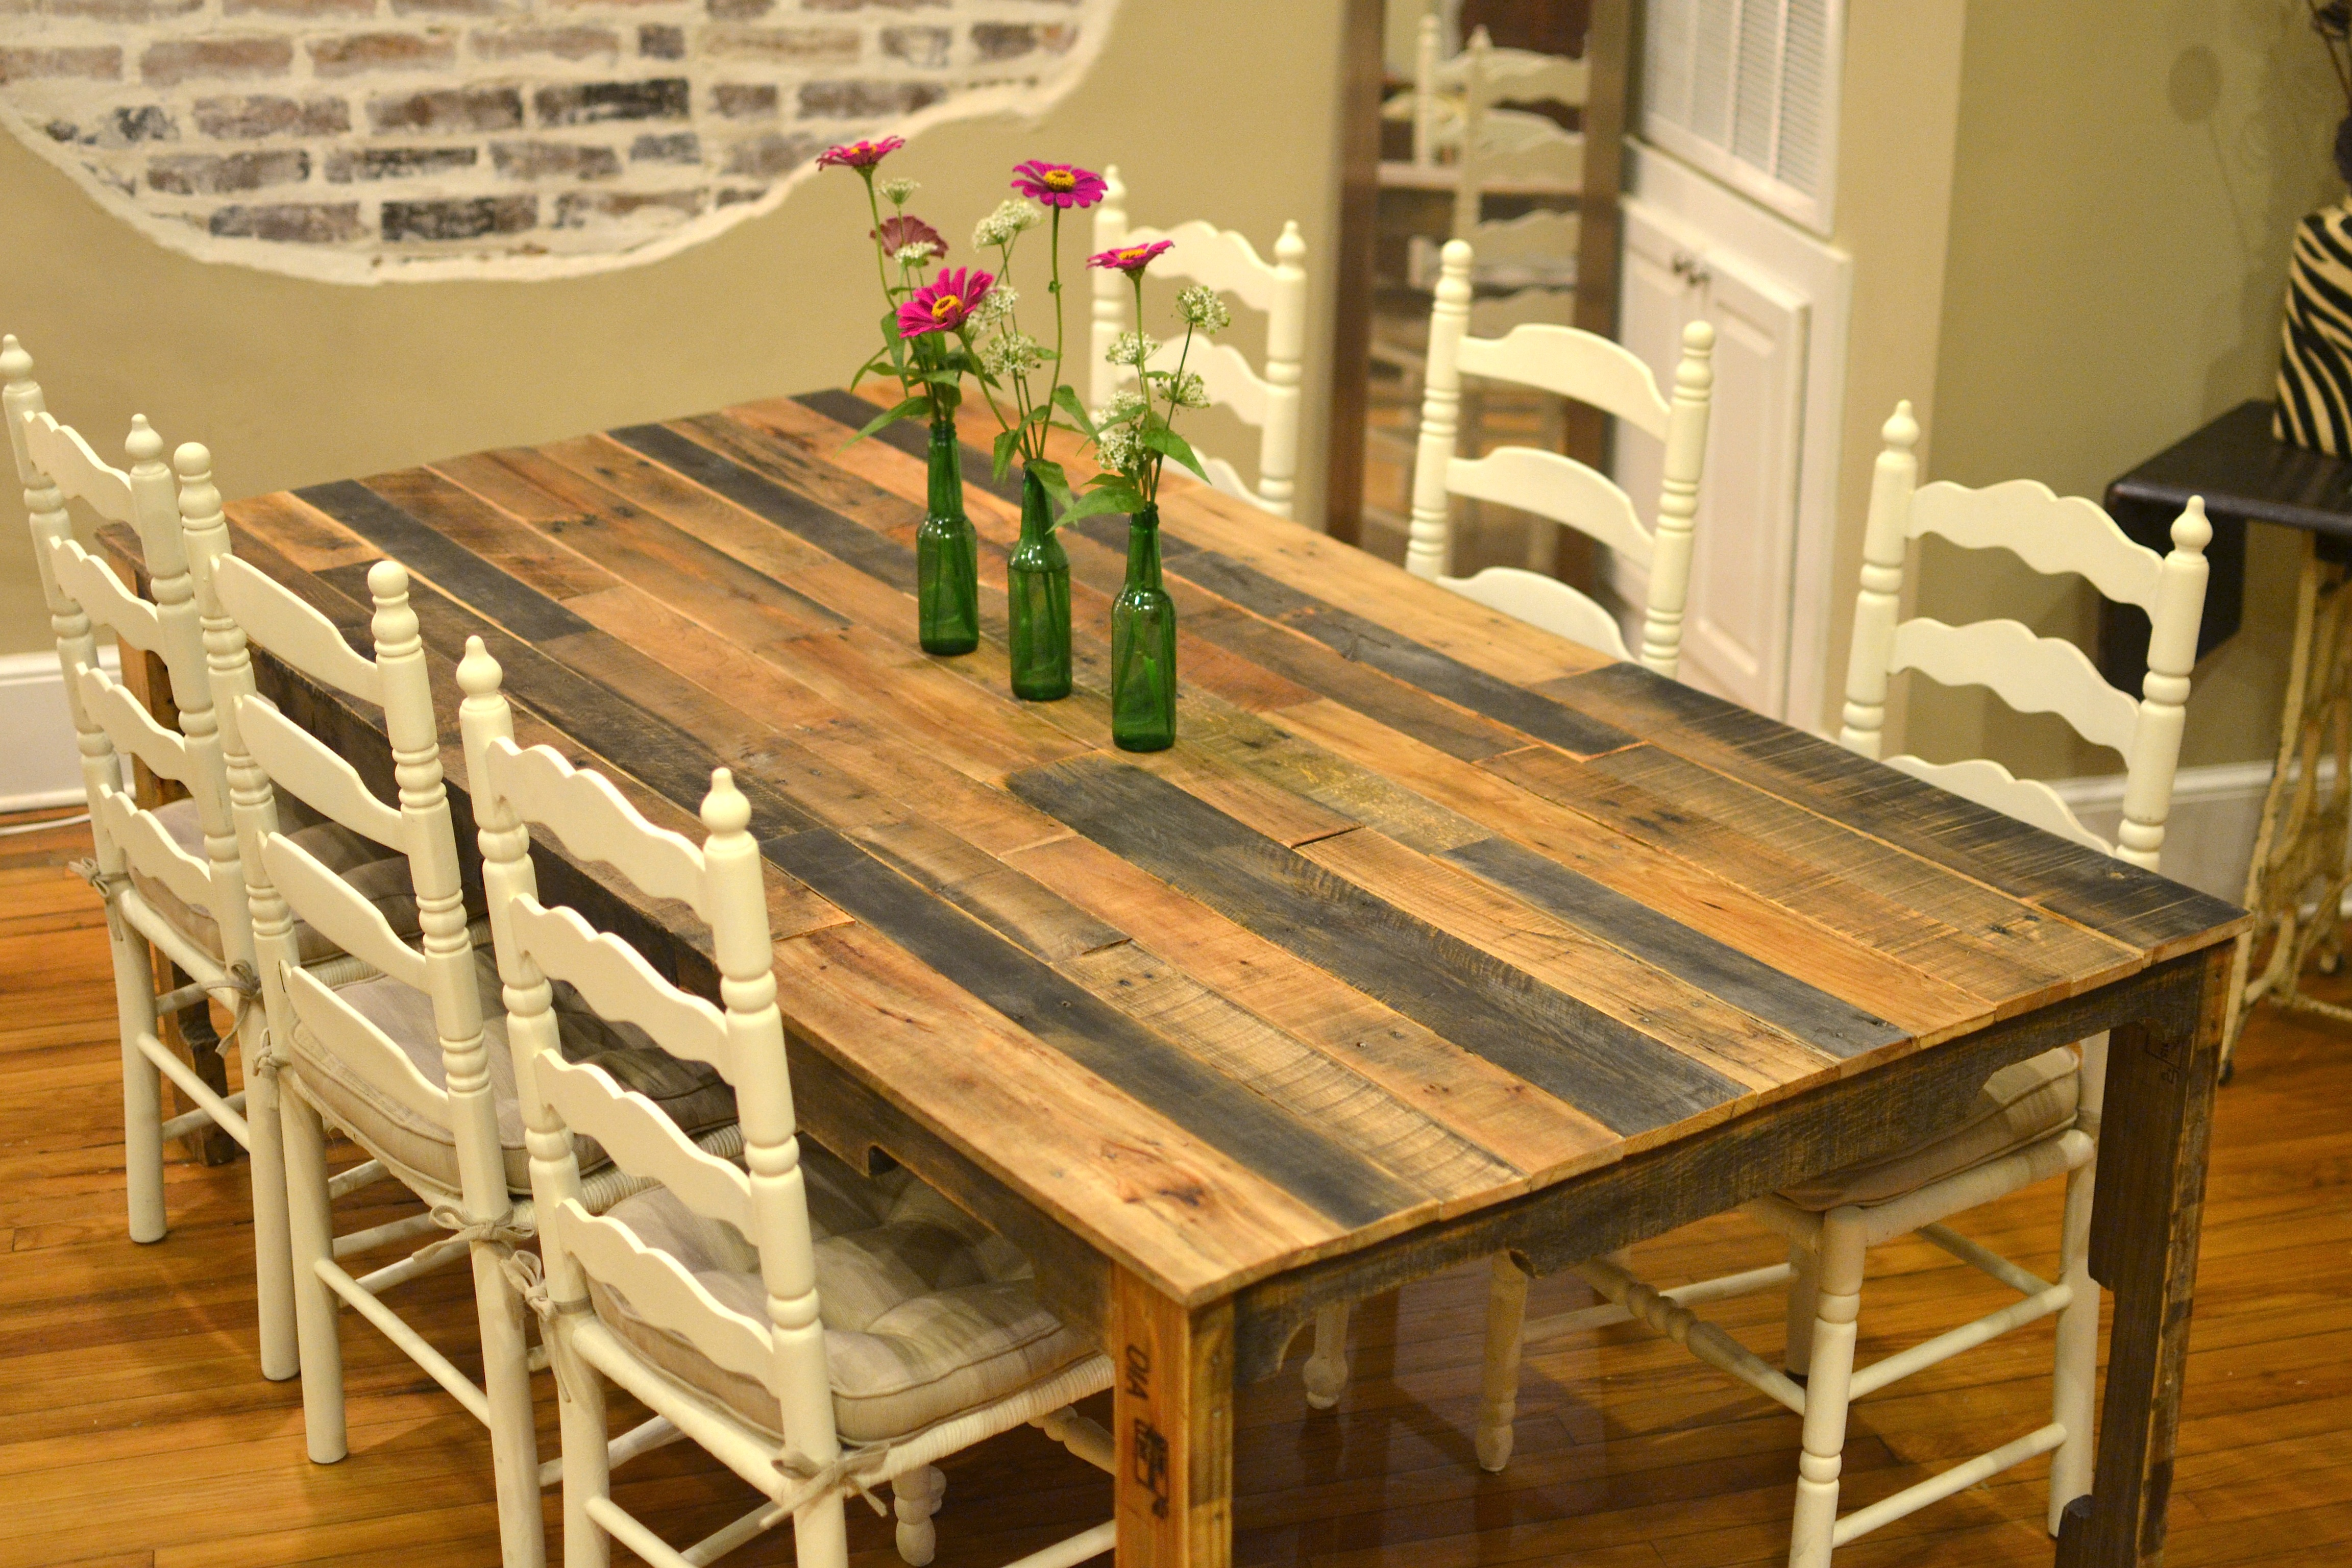 Diy Table With Pallets 13 Easy And Cost Effective Diy Pallet Dining Tables Shelterness